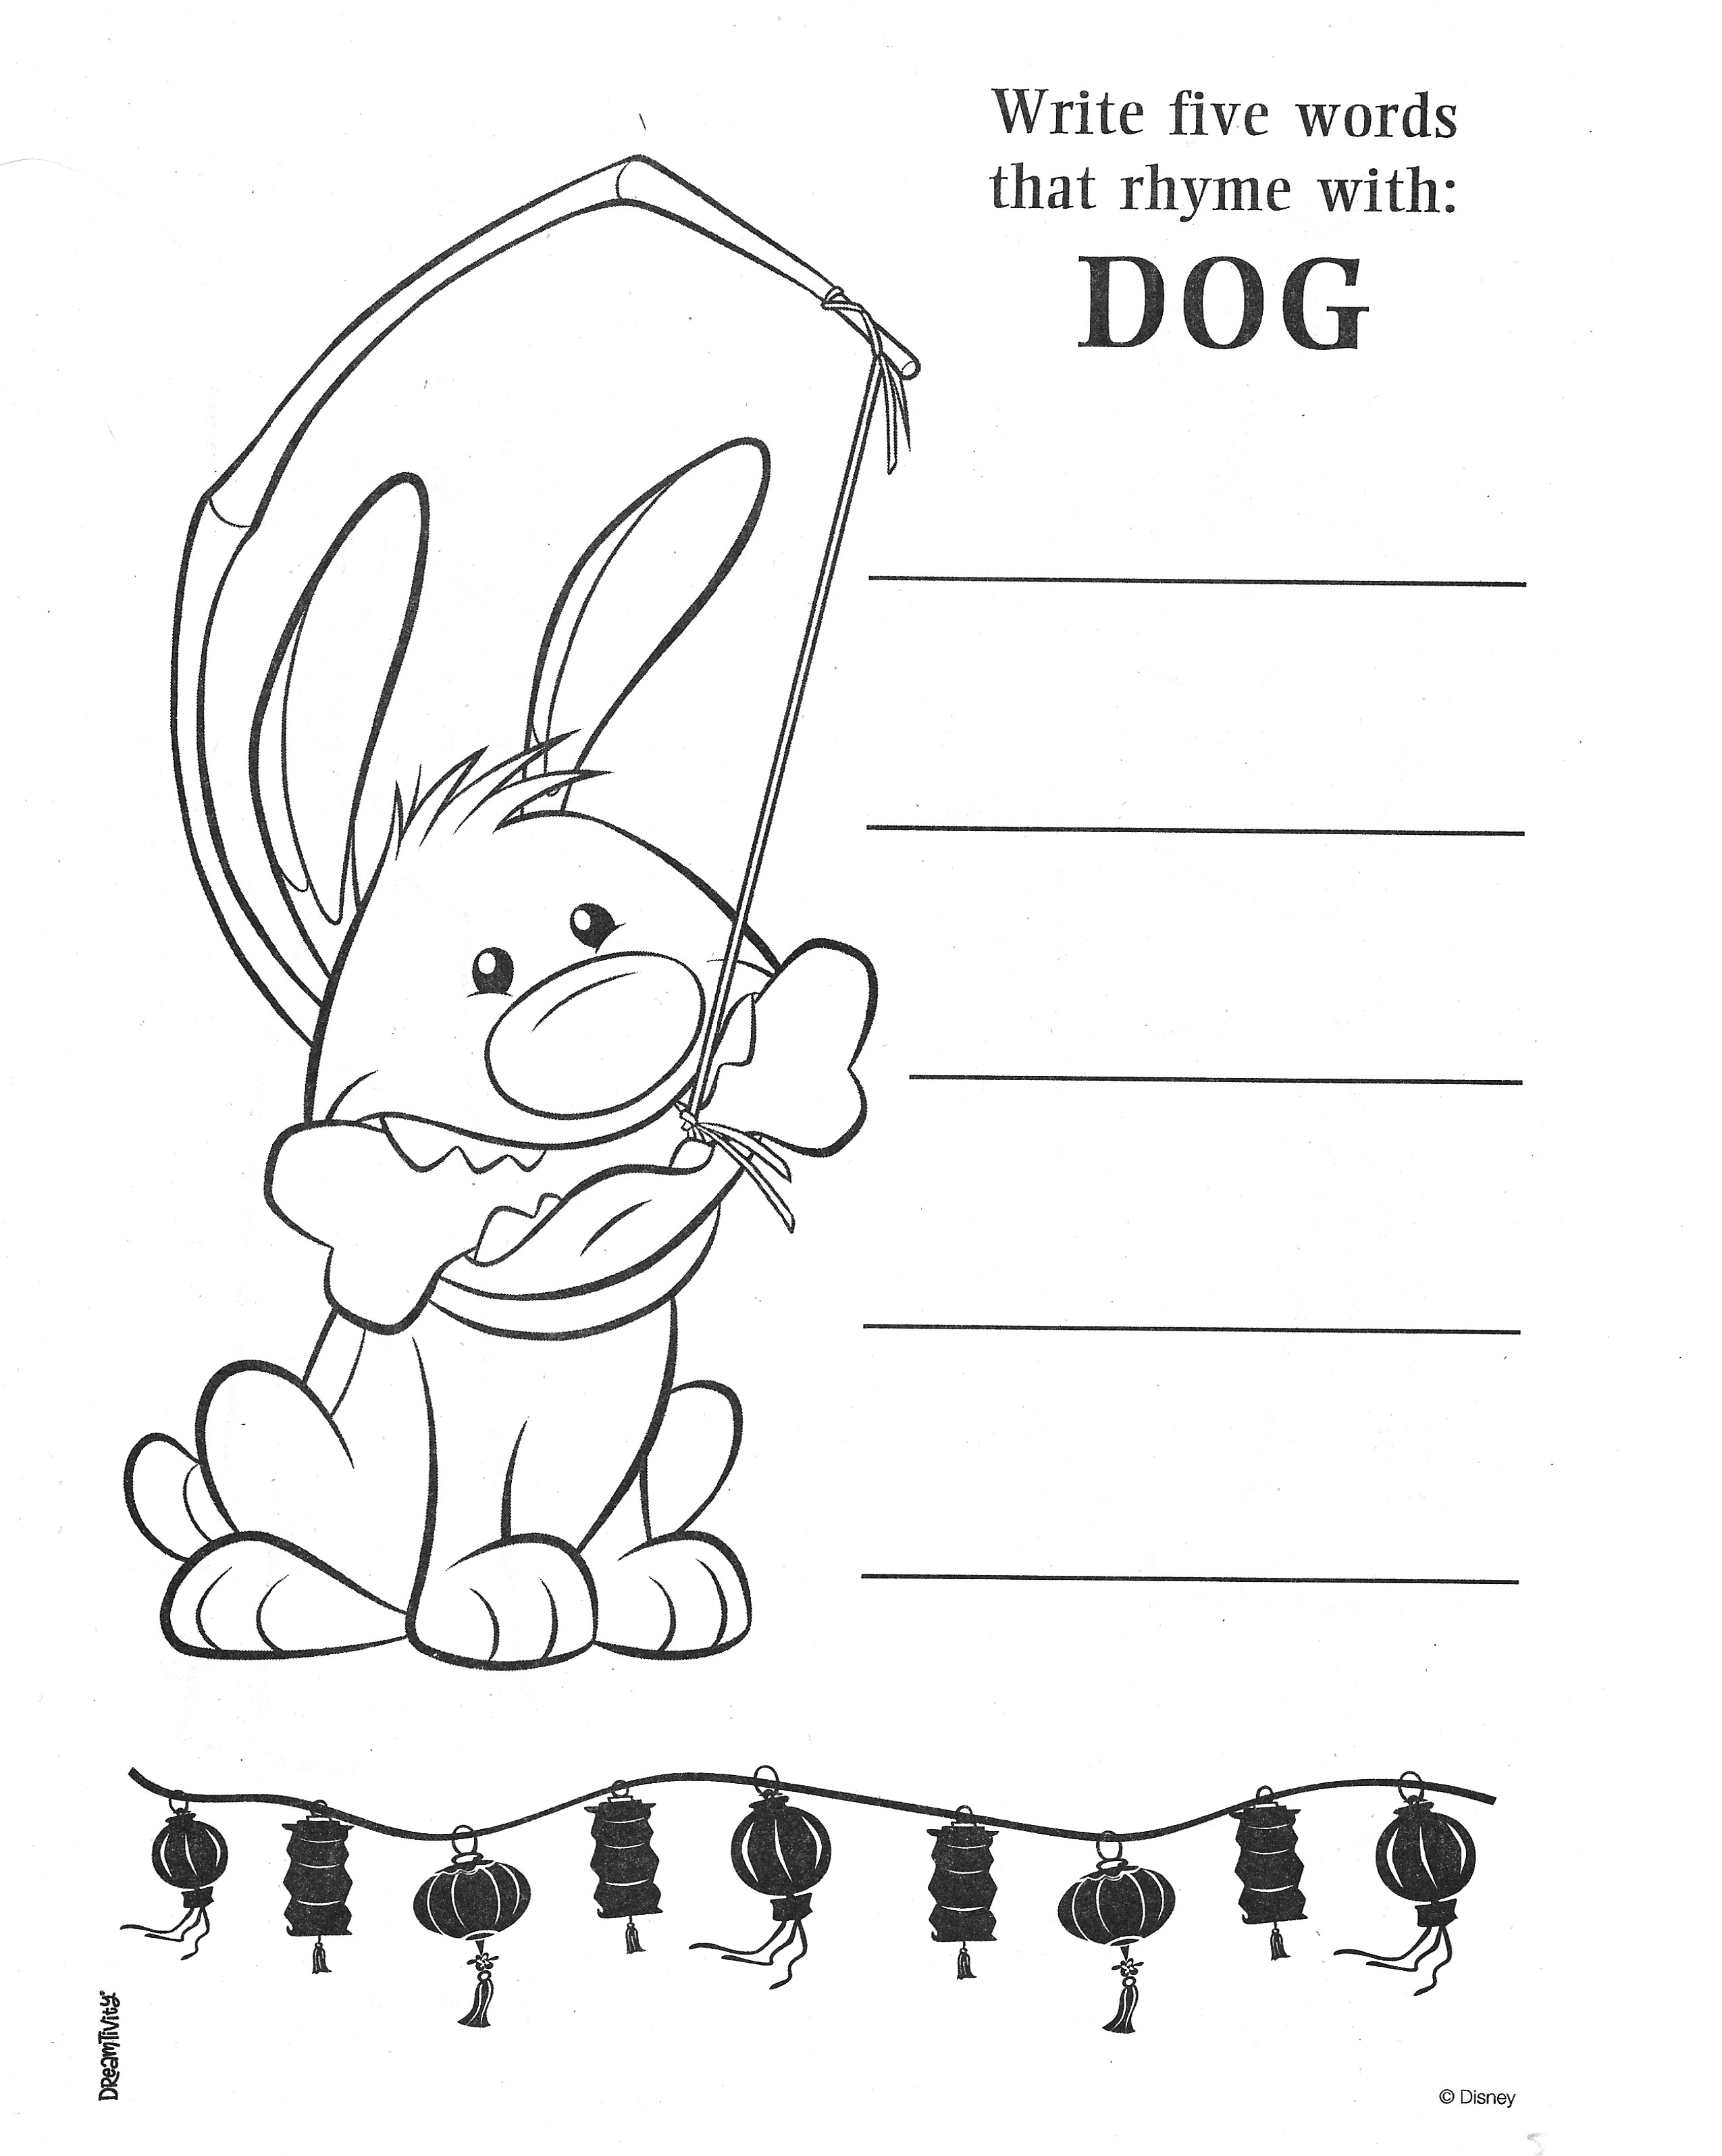 Mulan Coloring Page  Coloring pages, Color, Rhymes